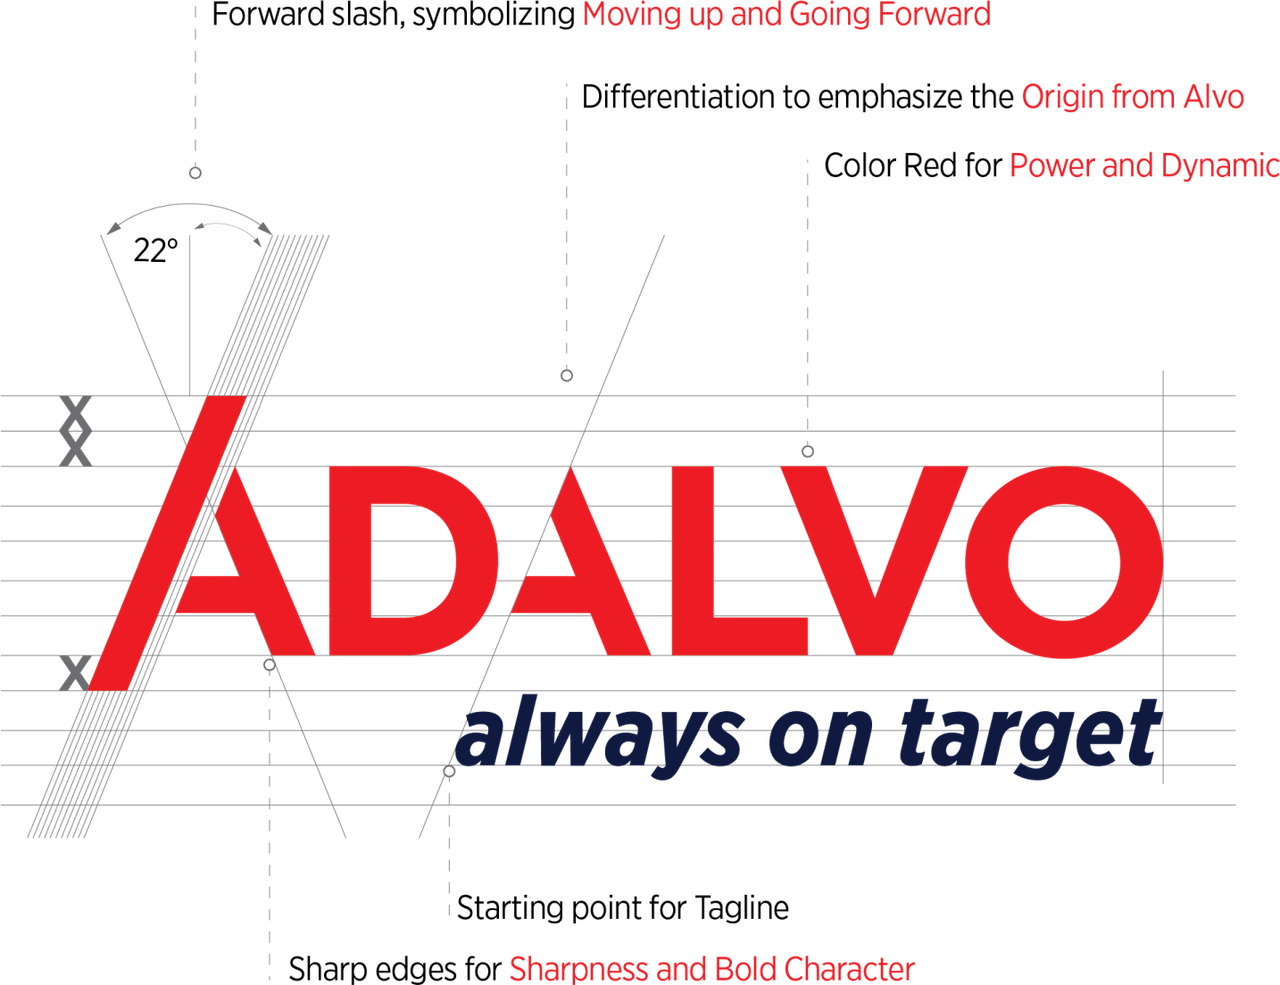 Adalvo logo with comments